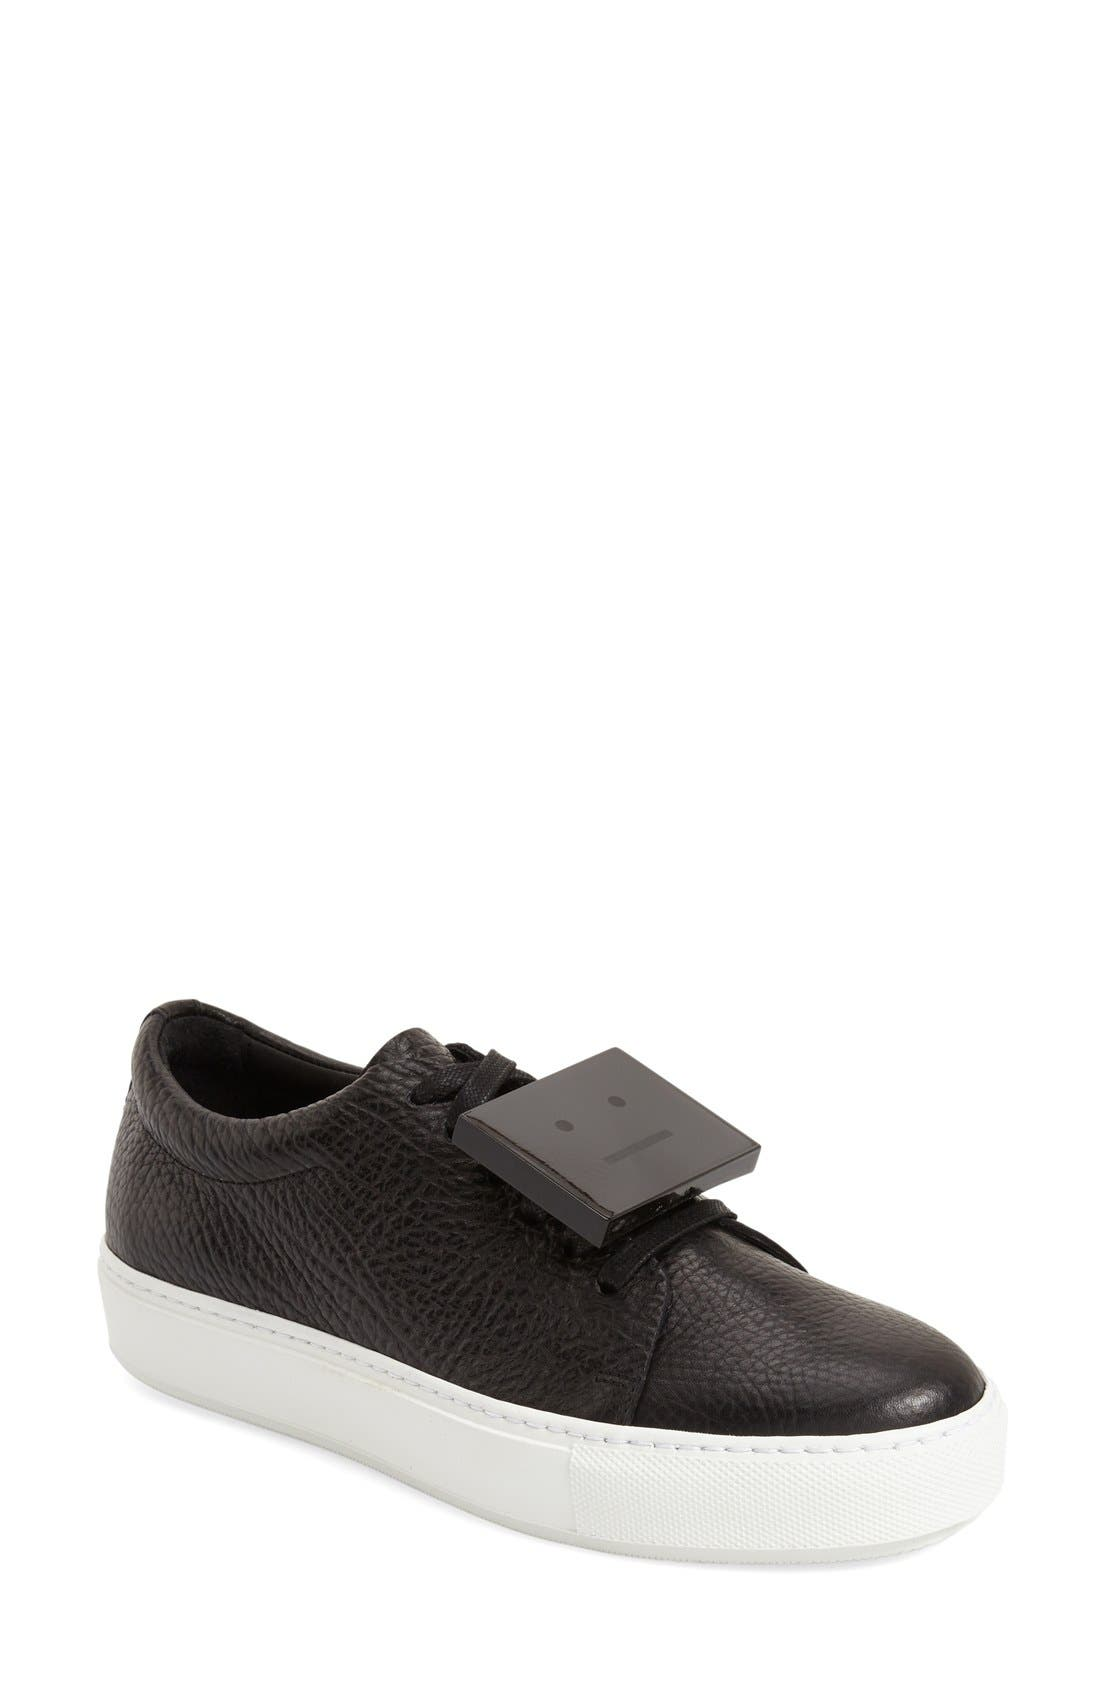 Adriana - Grain Leather Sneaker,                         Main,                         color, Black Leather